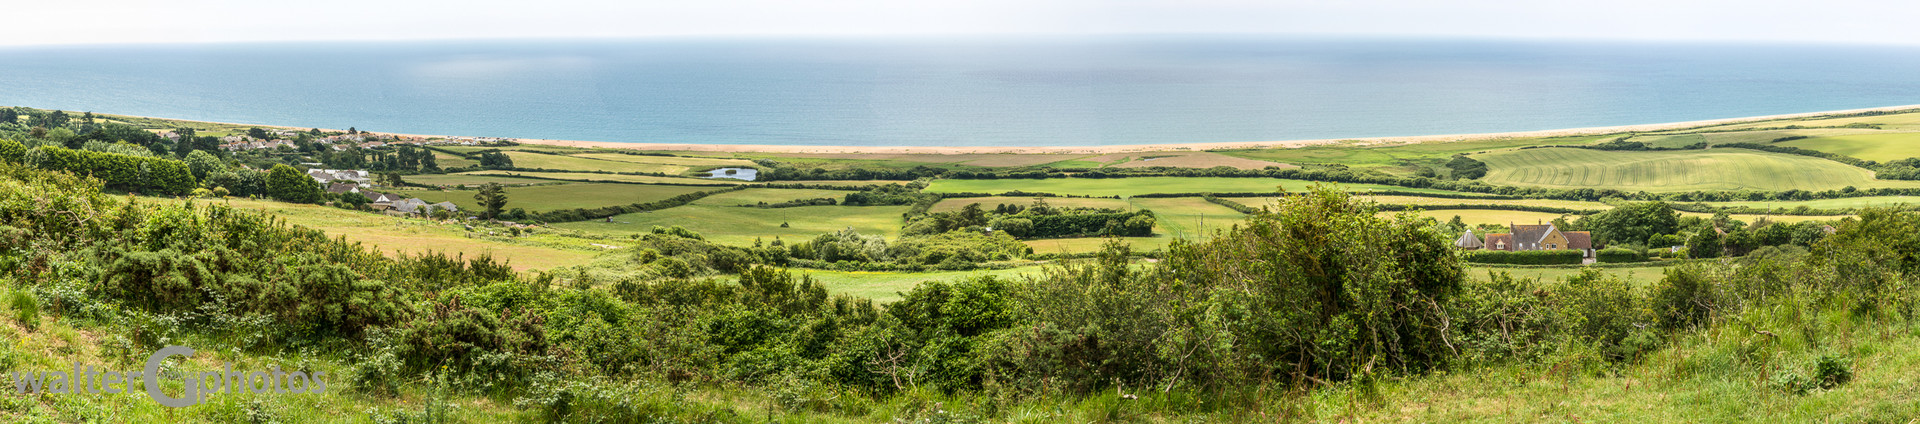 Landscape with English Channel, England